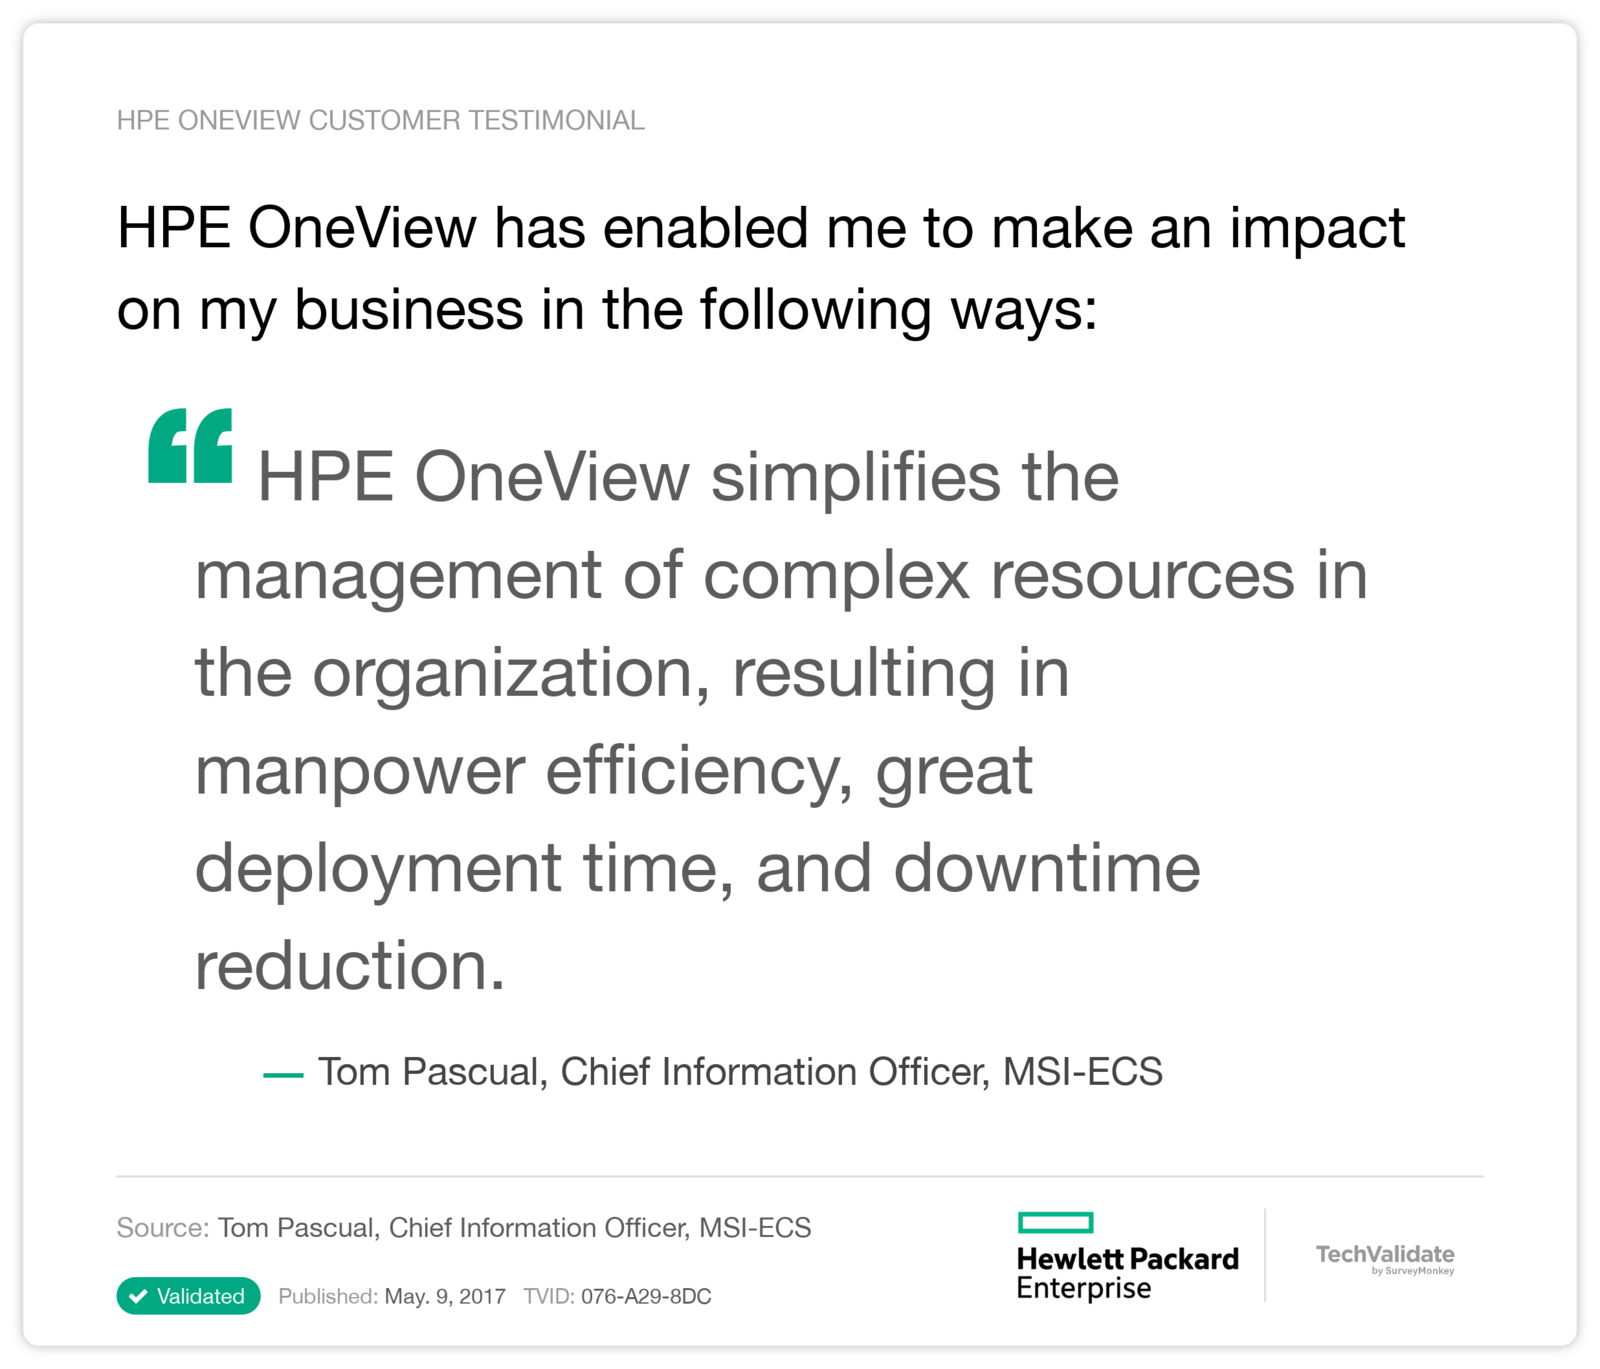 HPE OneView has enabled me to make an impact on my business in the following ways: